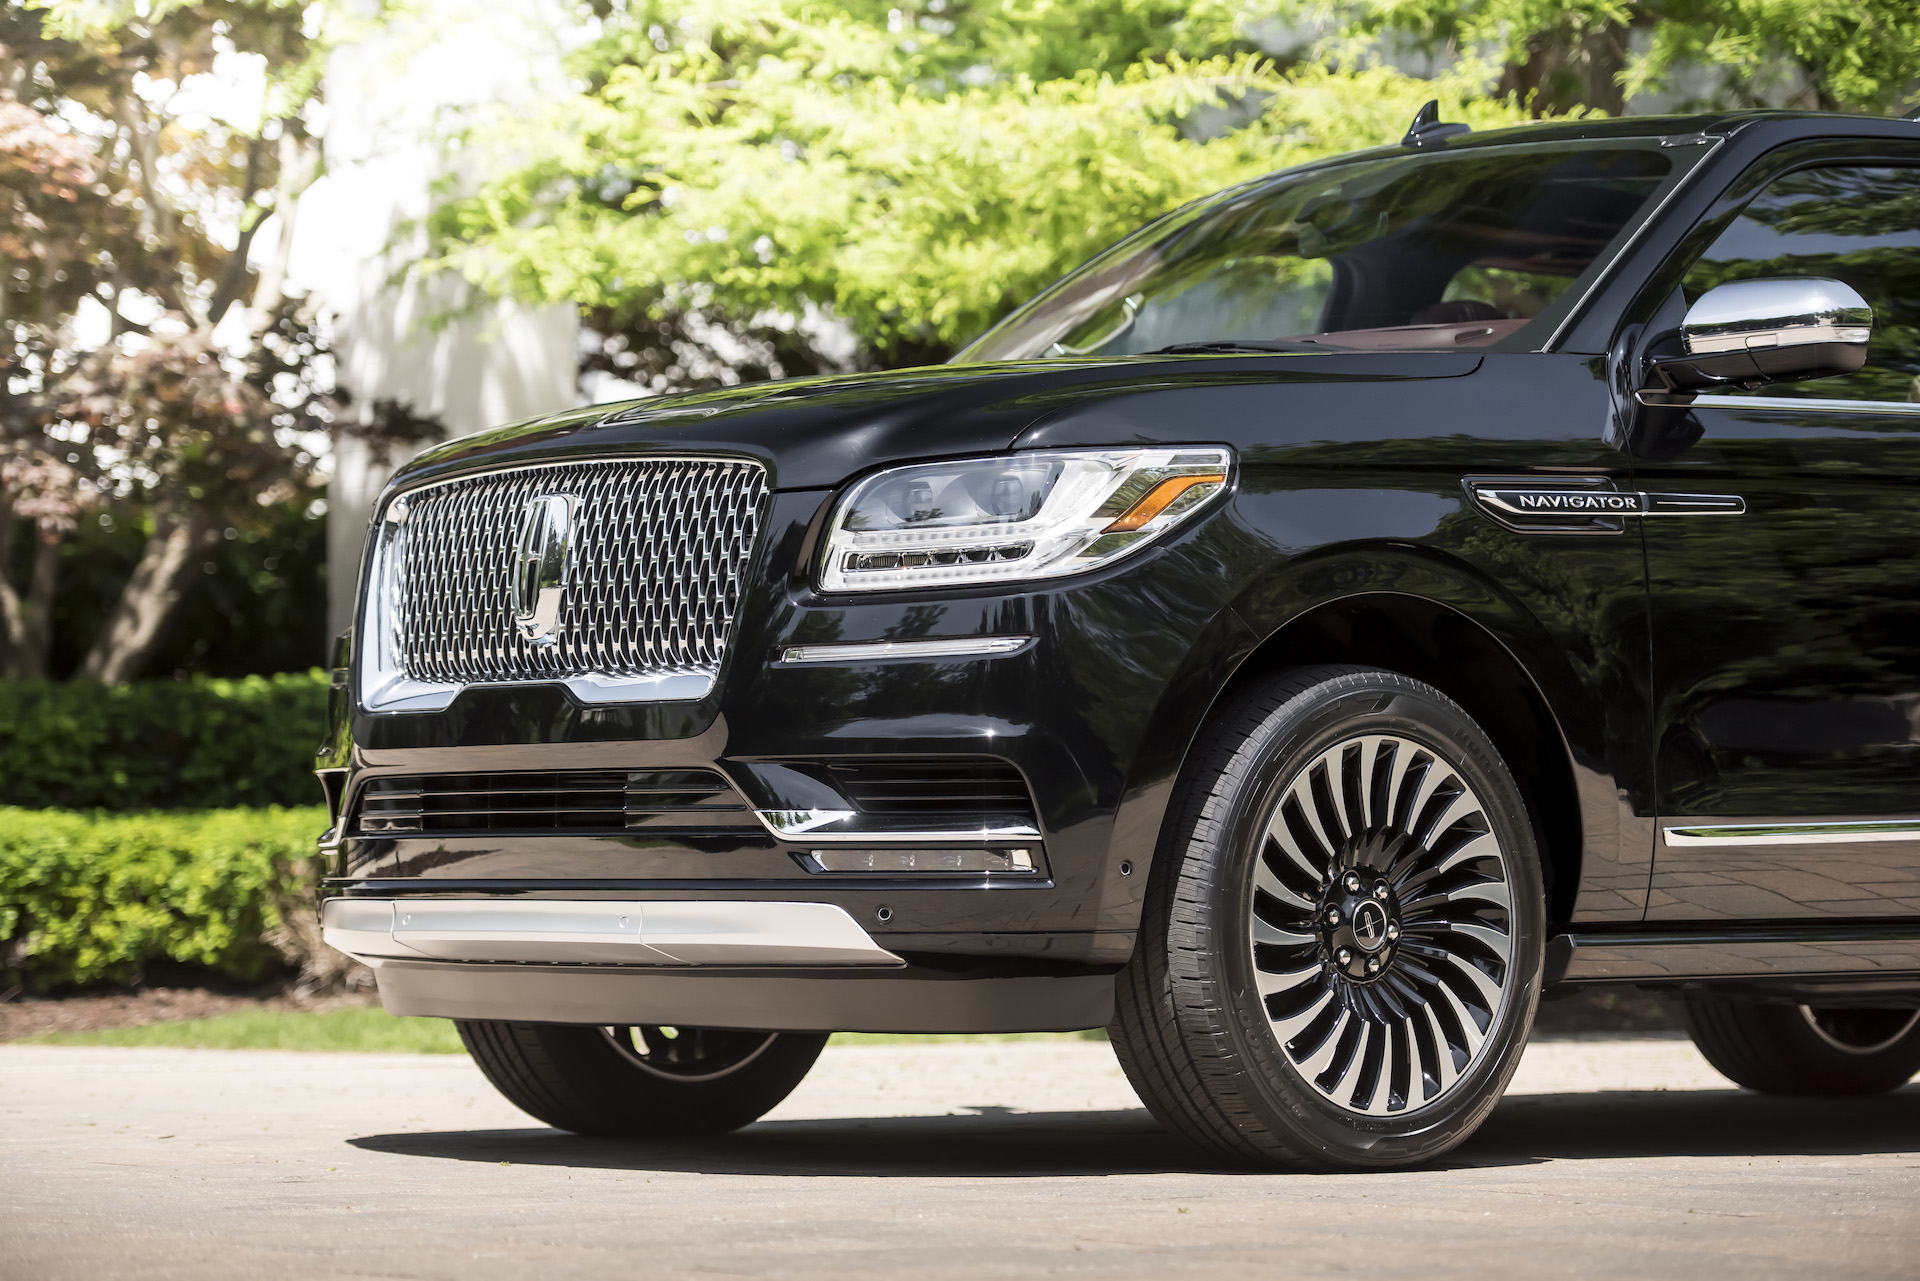 lincoln reveals 2018 navigator l in black label 39 destination 39 trim autozaurus. Black Bedroom Furniture Sets. Home Design Ideas